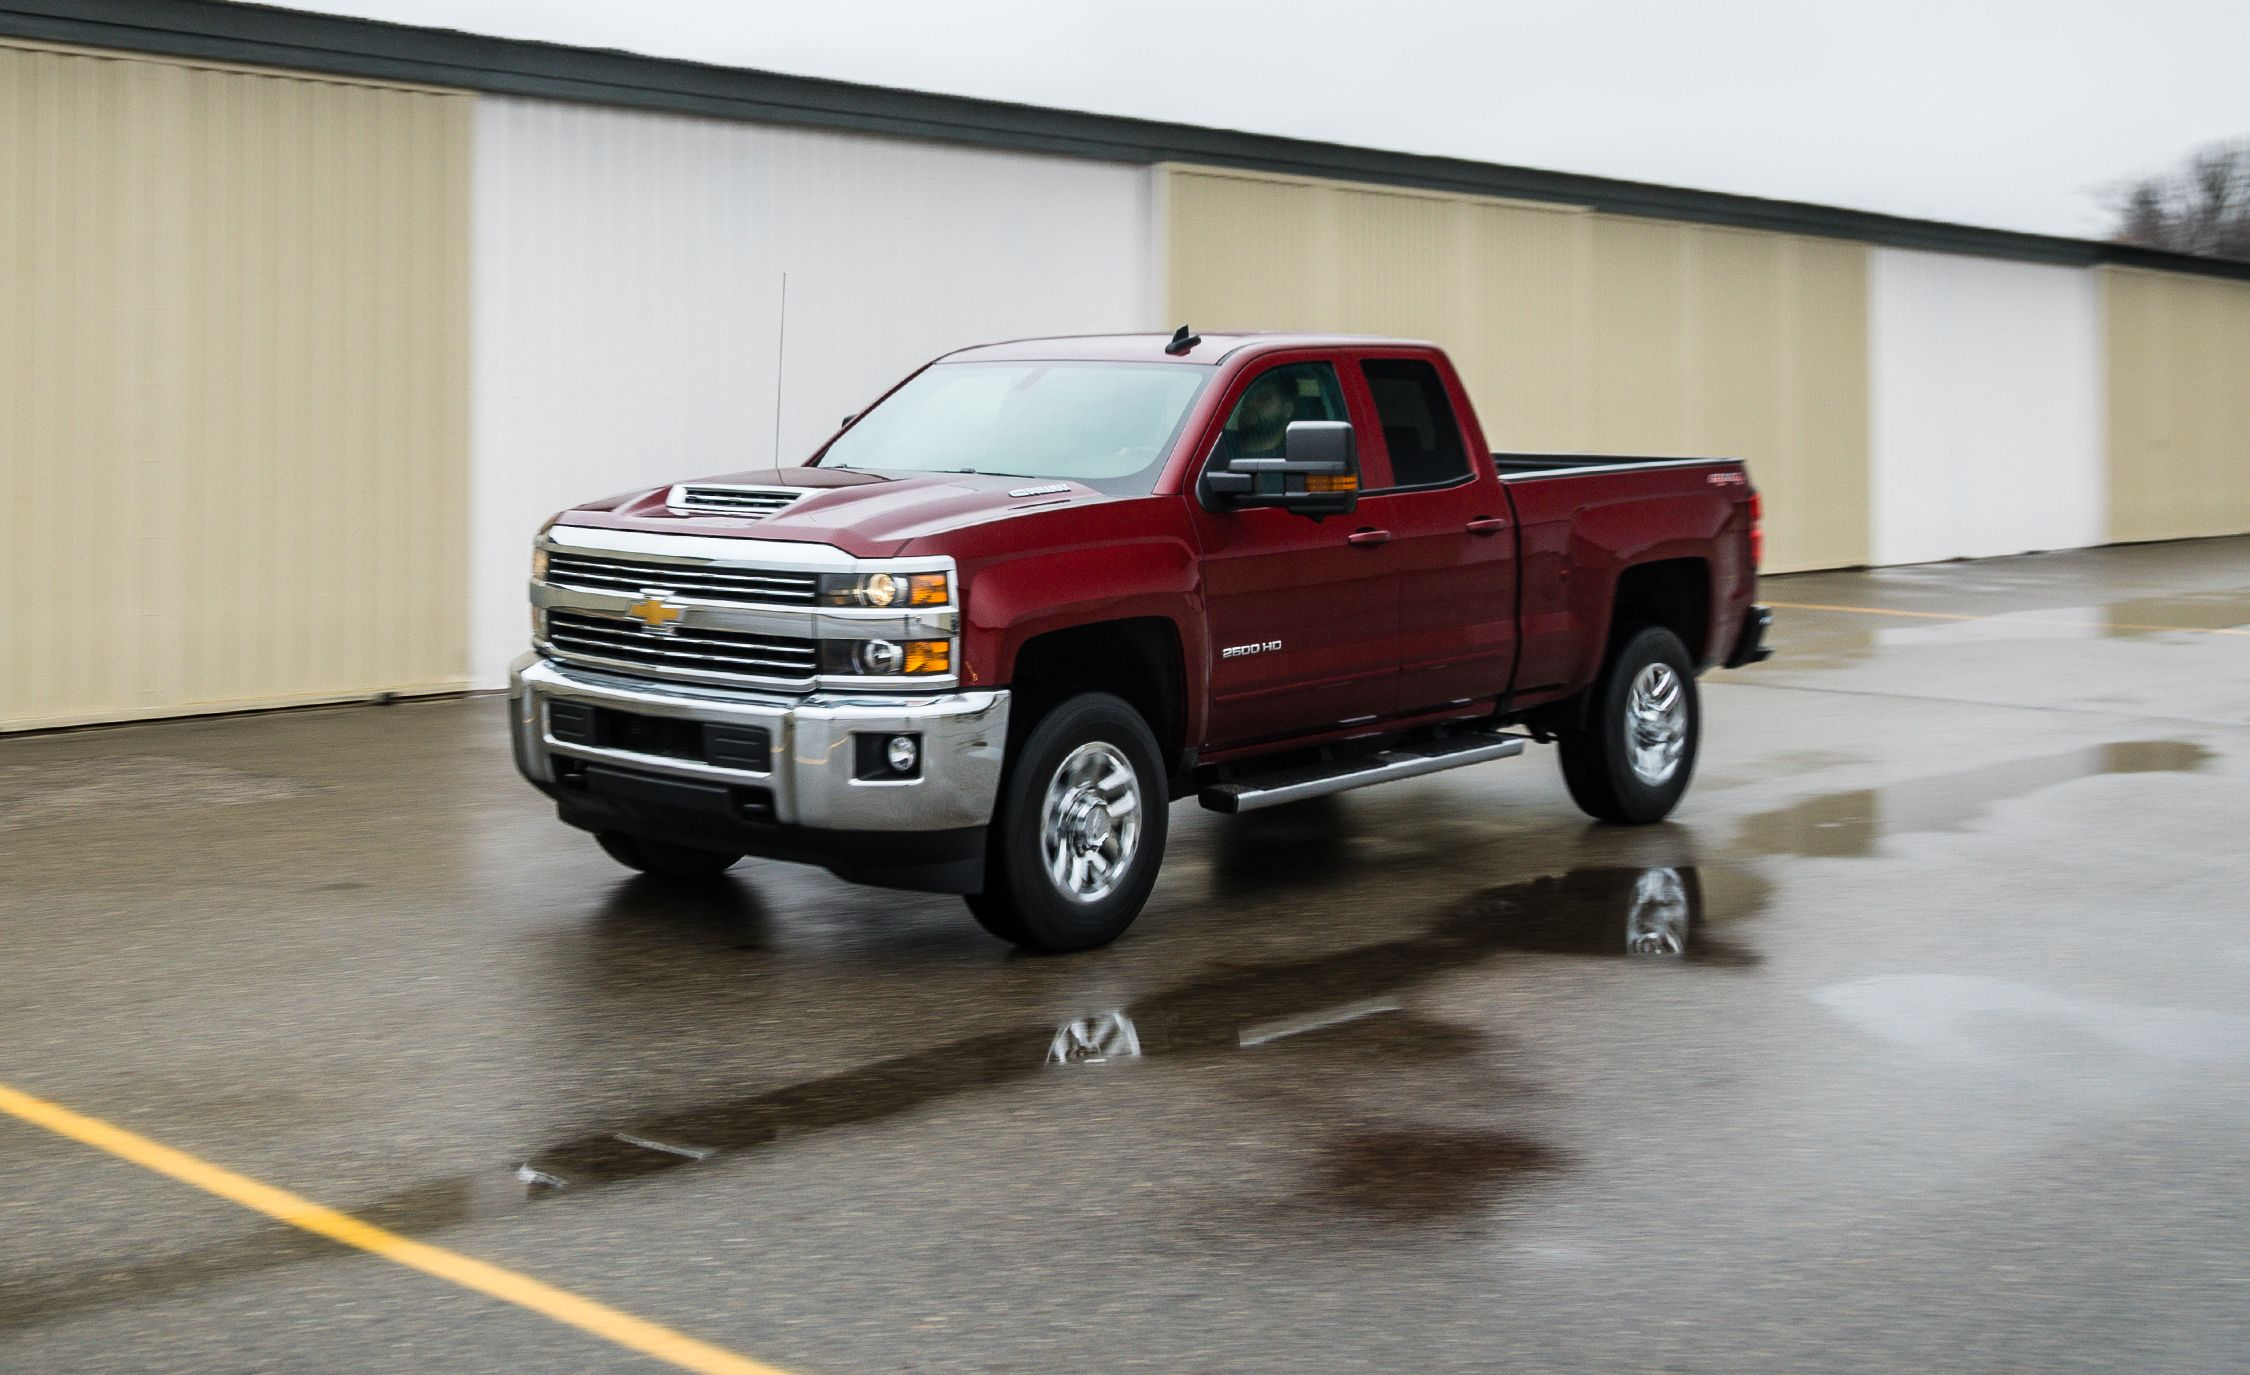 2018 Chevrolet Silverado 2500hd 3500hd Fuel Economy Review Car And Driver